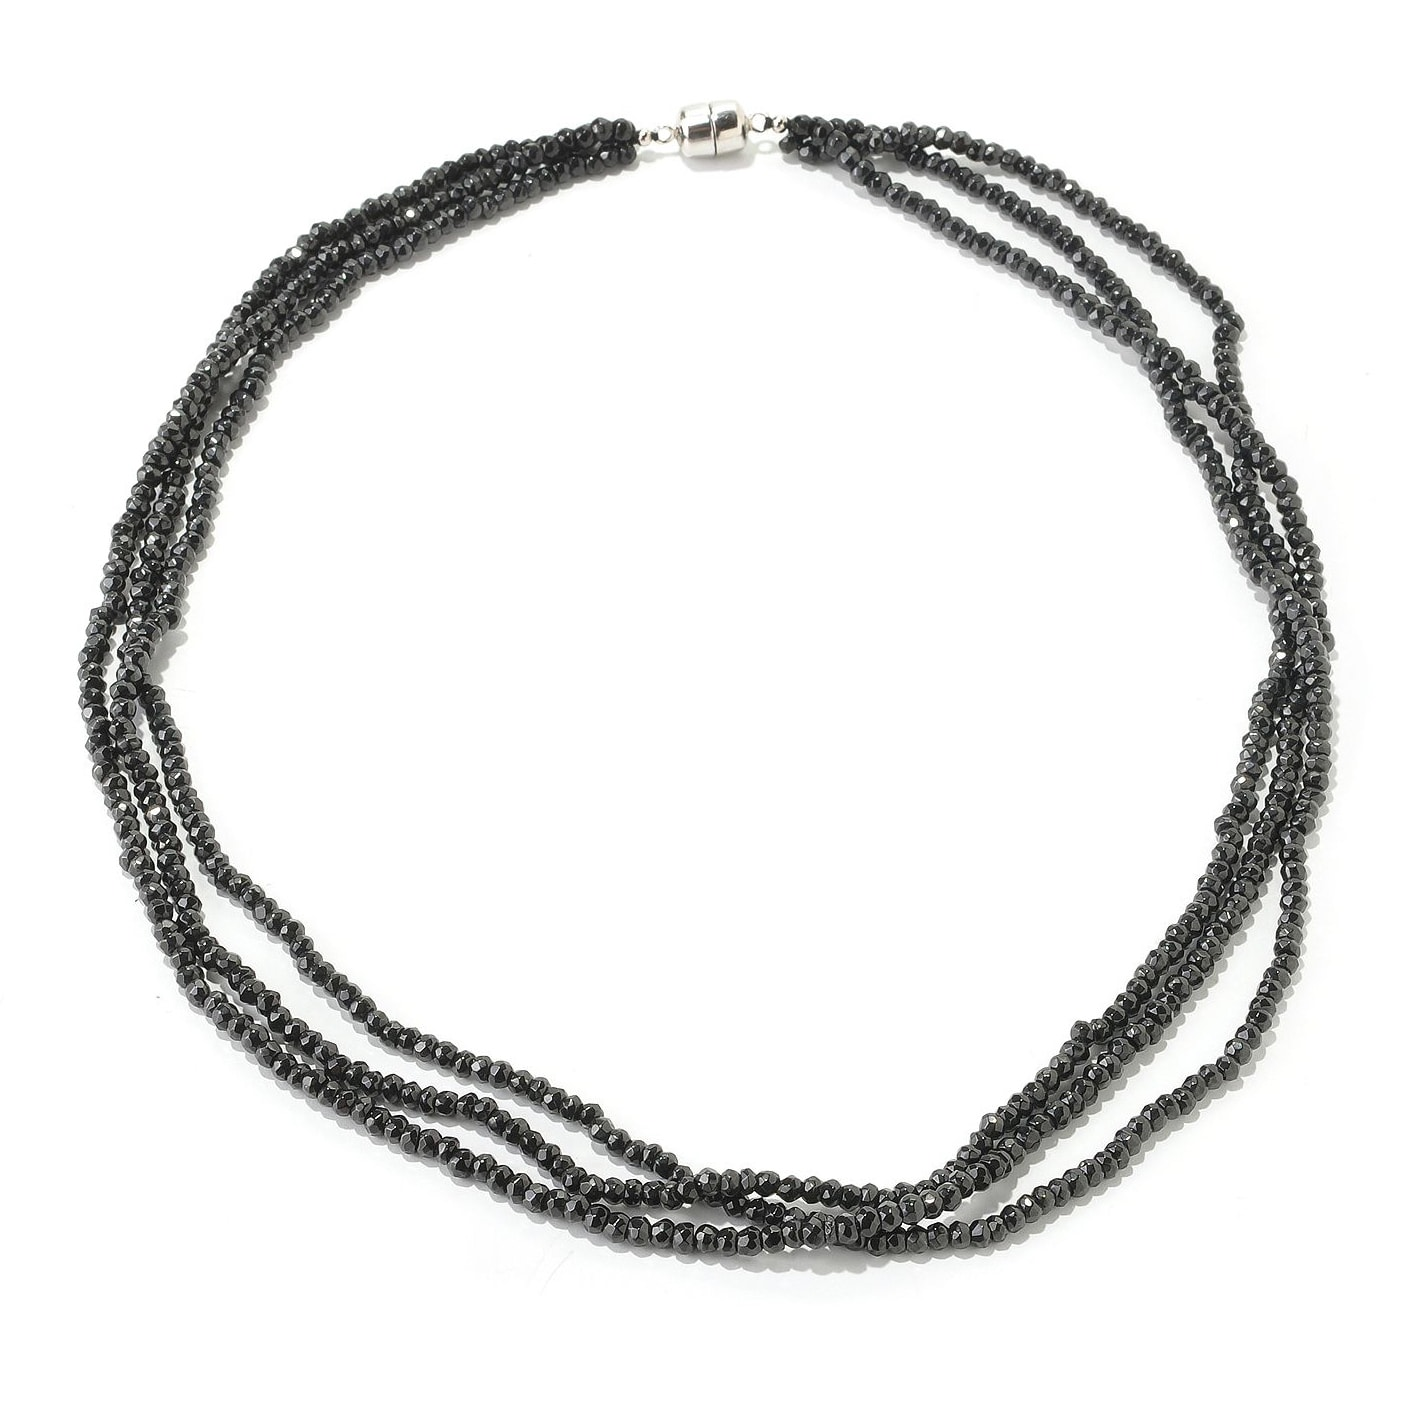 V3 Jewelry Sterling Silver Black Spinel 3-Strand Bead Necklace (18 or 24 inches)